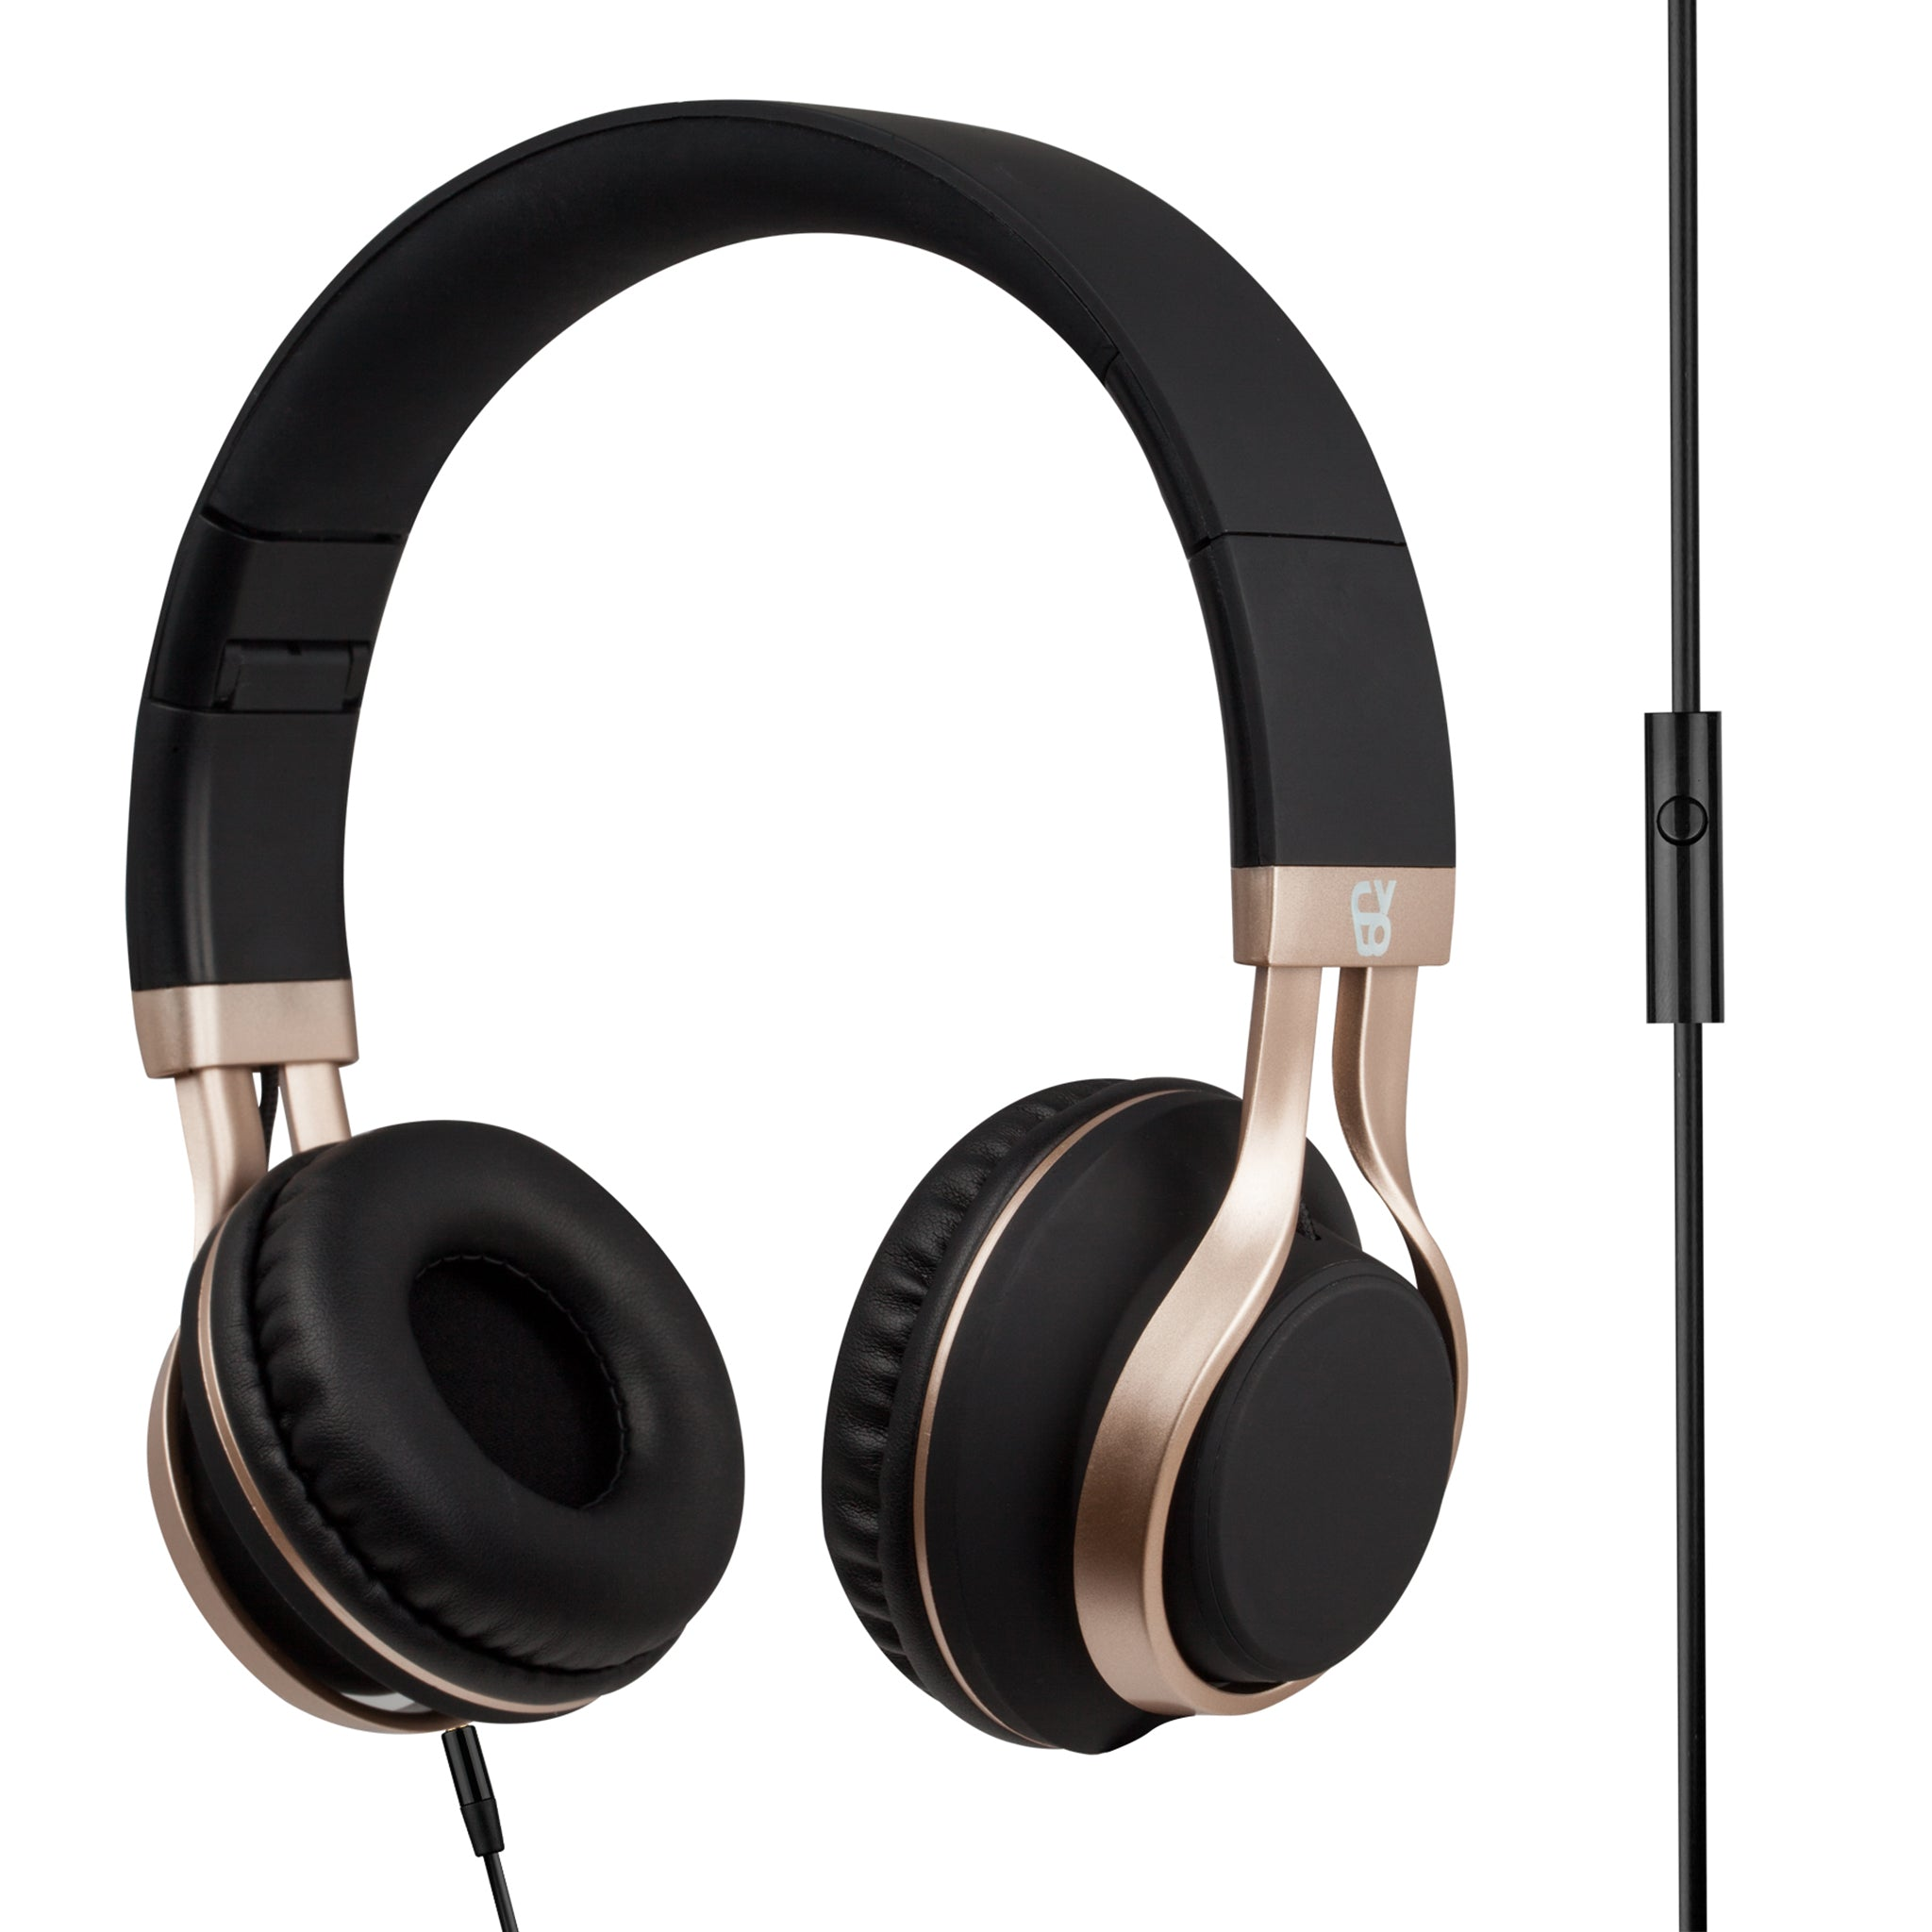 Wireless headphones gold and black - rose gold headphones cord